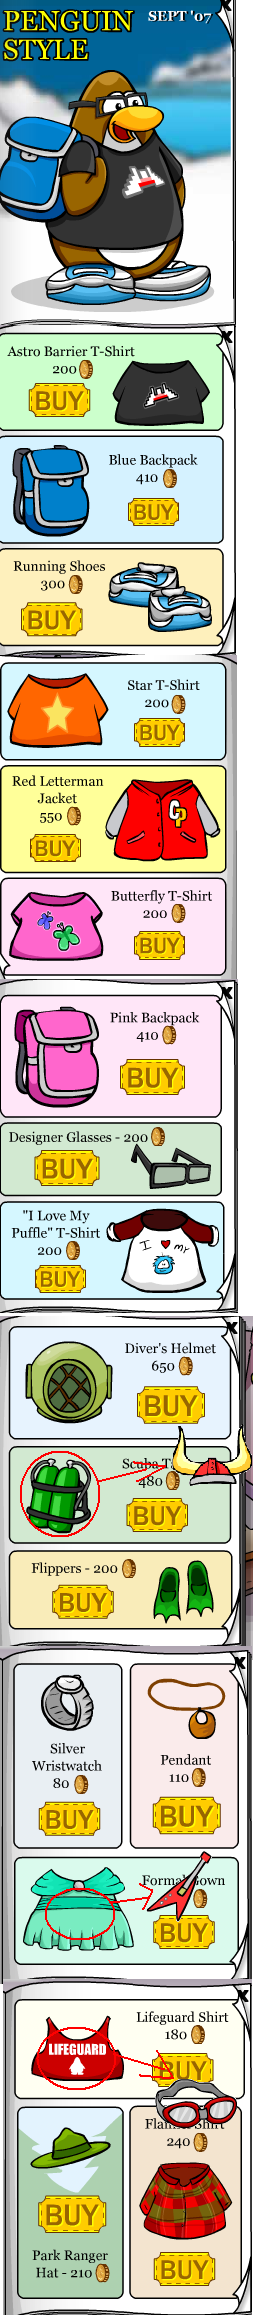 clothing-catalog-september-2007.png